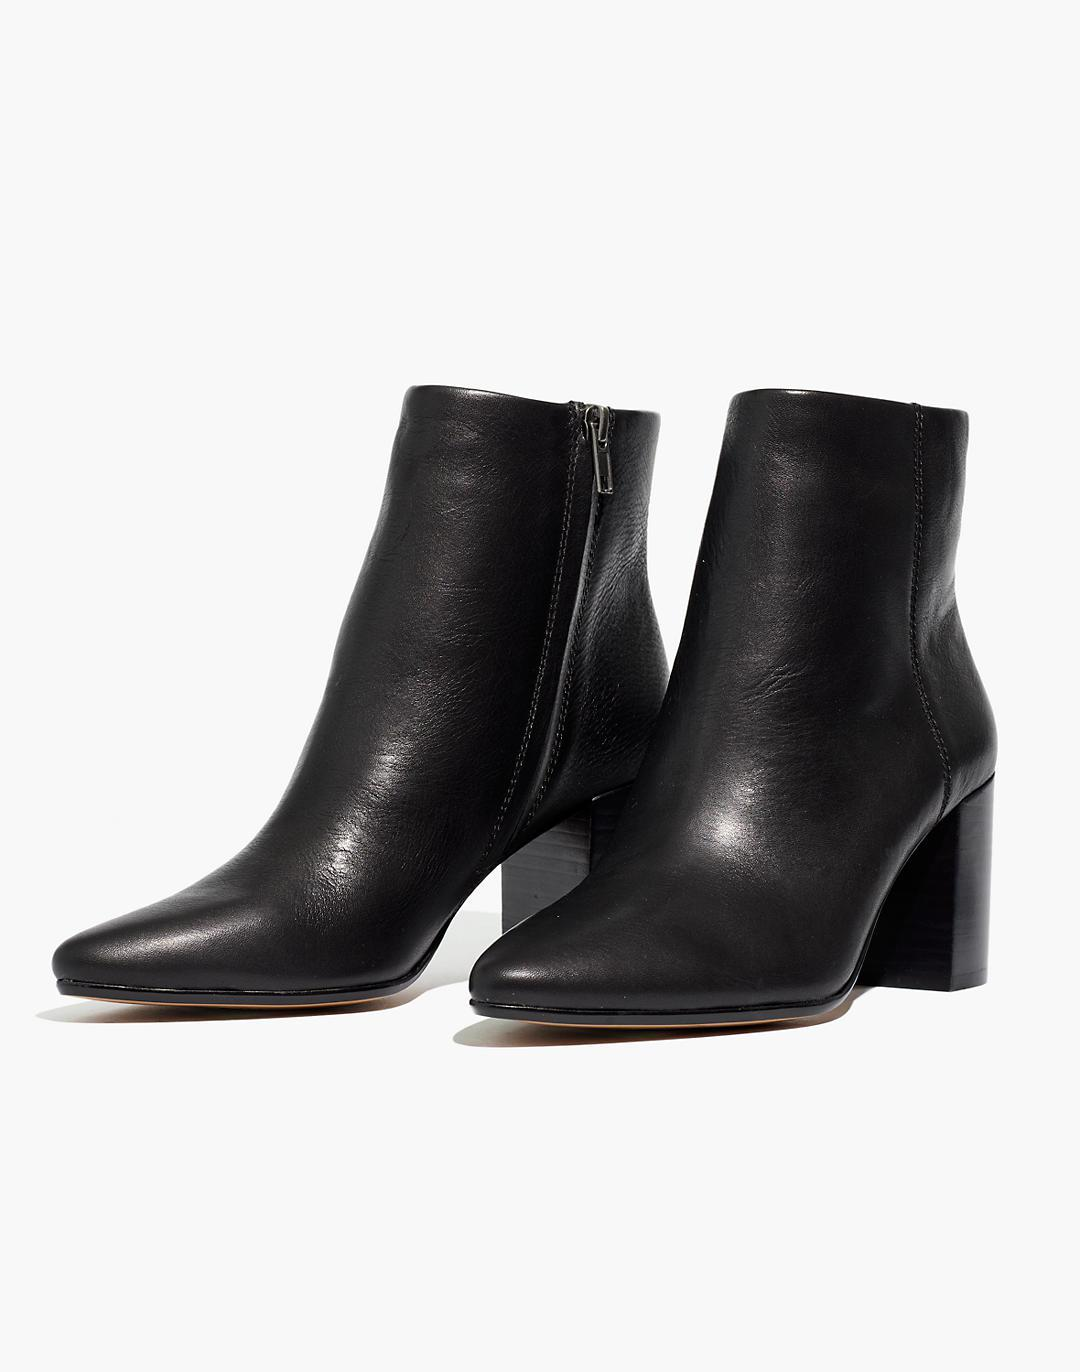 The Fiona Boot in Leather